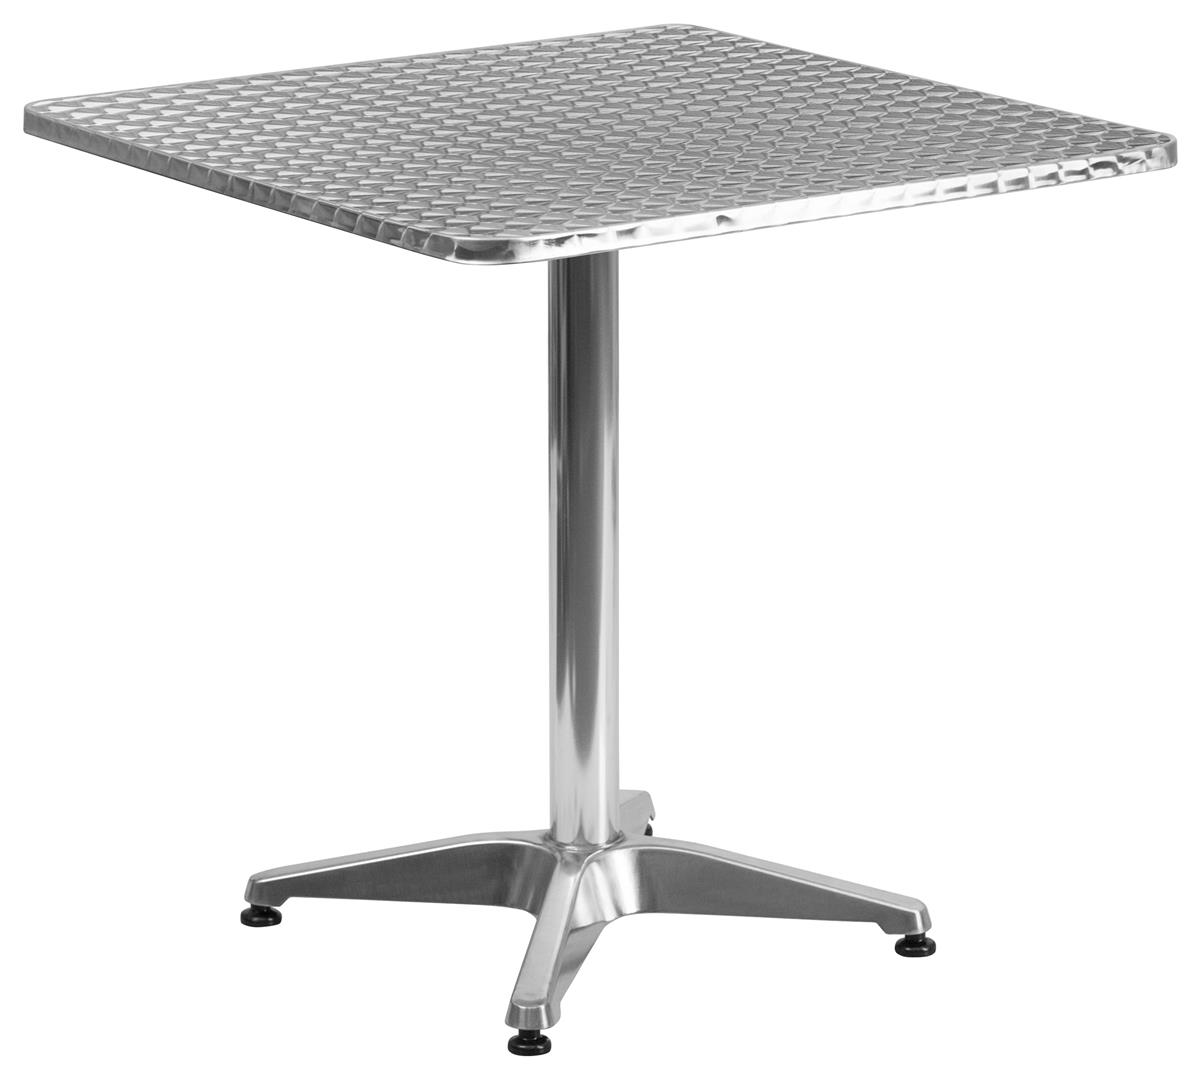 Bistro Table LG Aluminum Square Dining Table